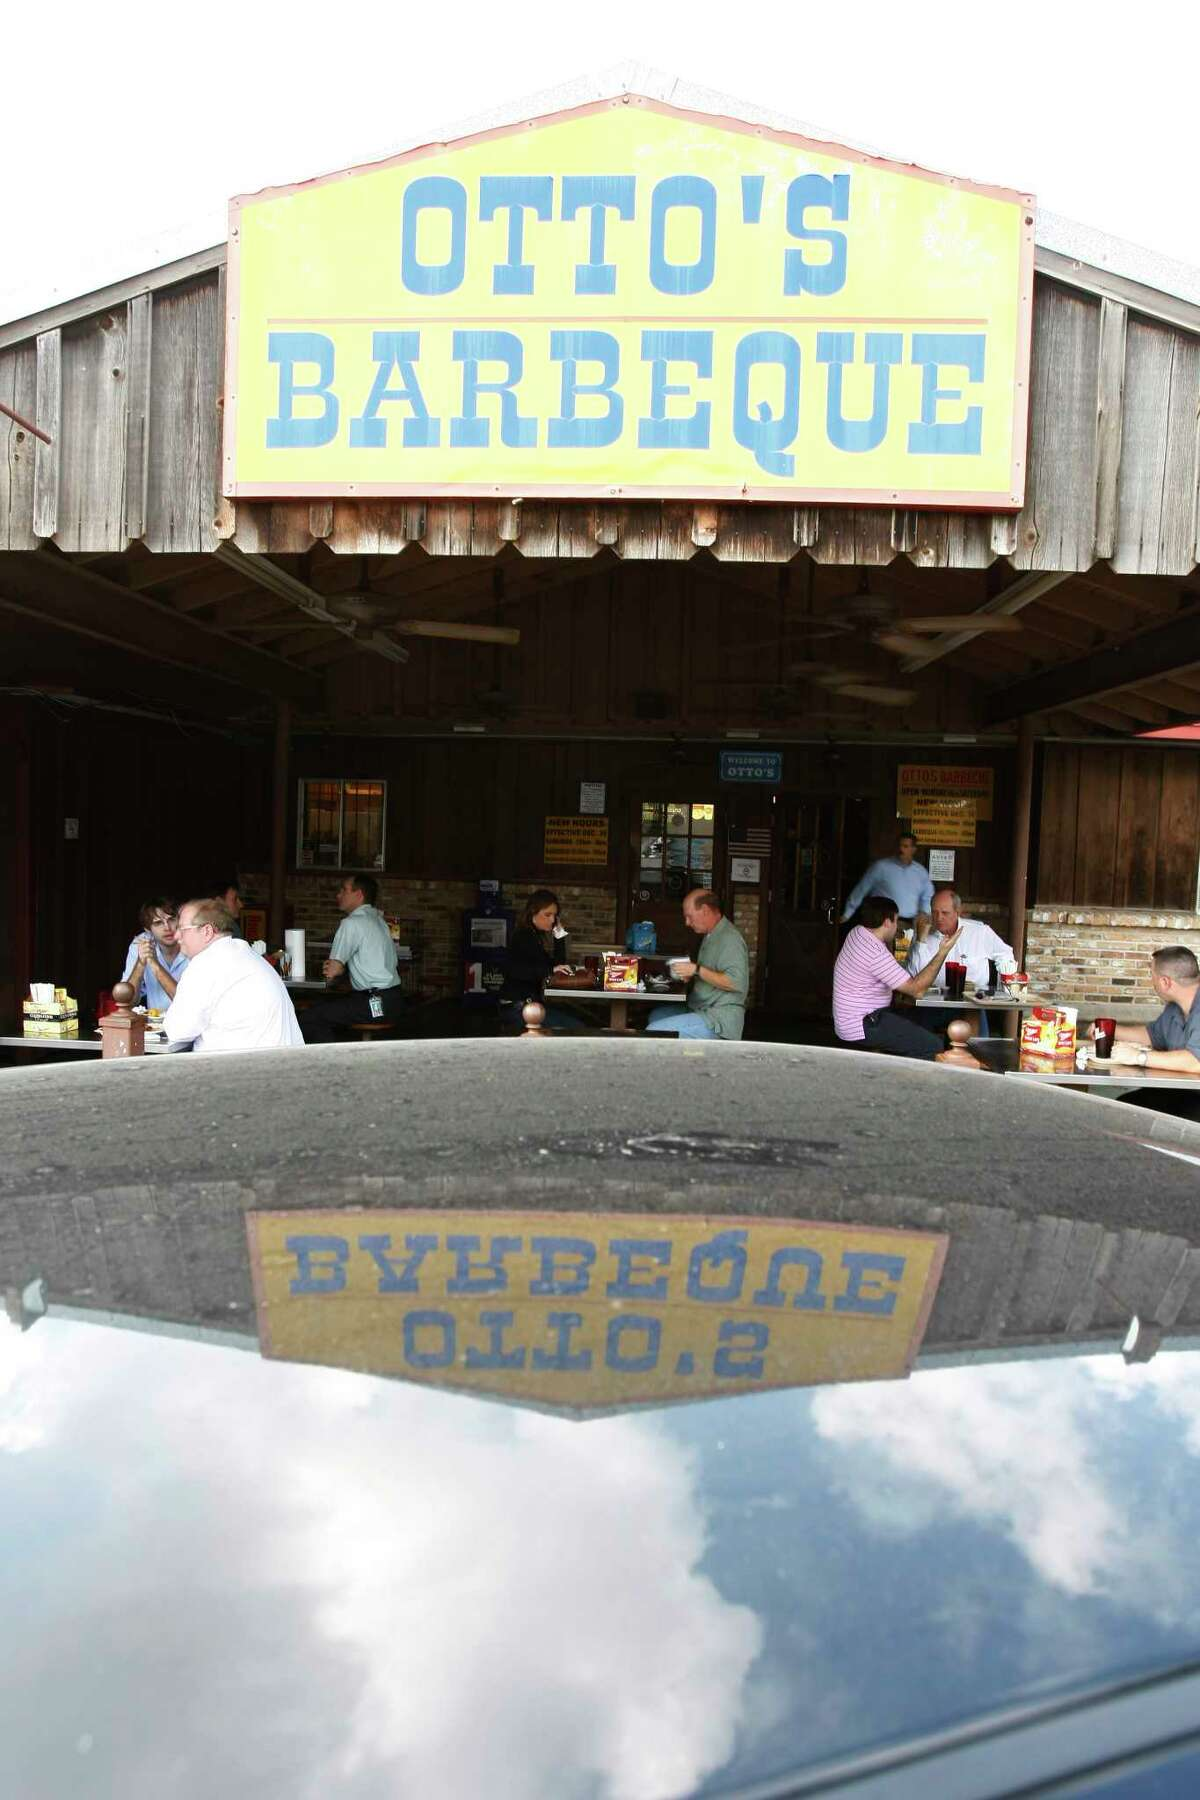 The late Otto's Barbeque on Memorial made Texas Monthly's top barbecue joints list in 1973.